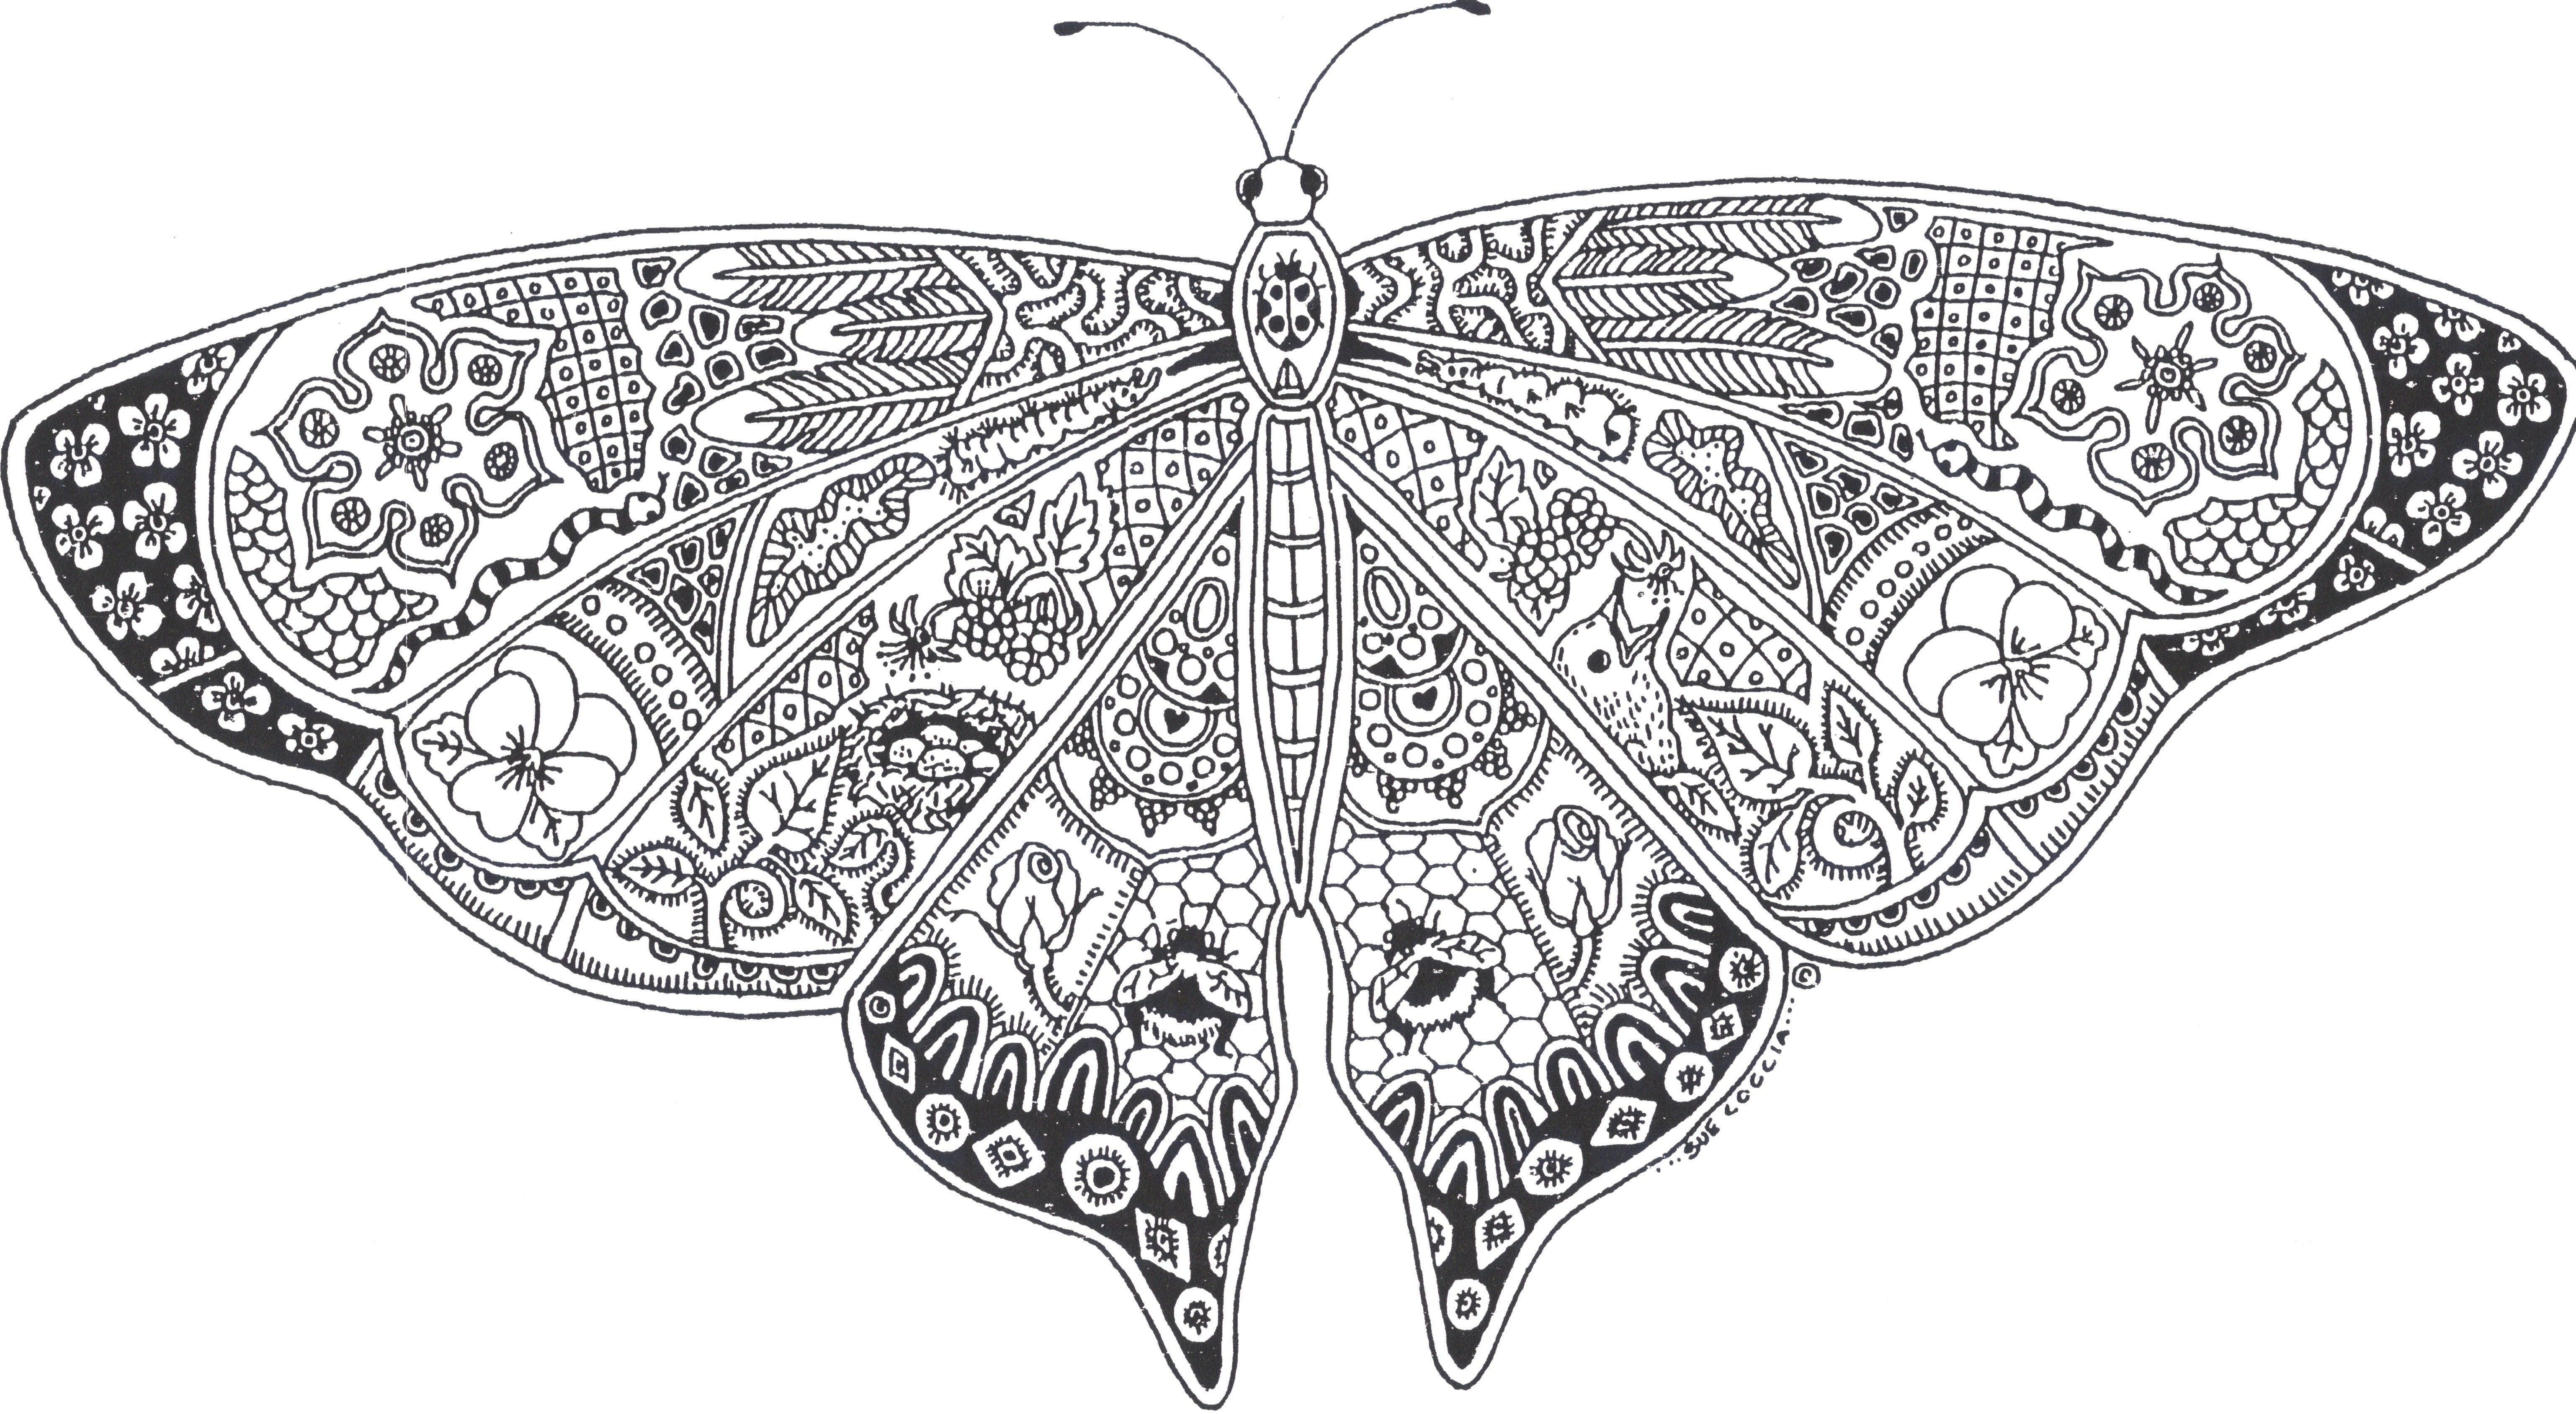 Butterfly Coloring Page Coloring Page Butterfly Coloring Pages Free Zentangle Page 41 Entitlementtrap Com Butterfly Coloring Page Free Coloring Pages Coloring Books